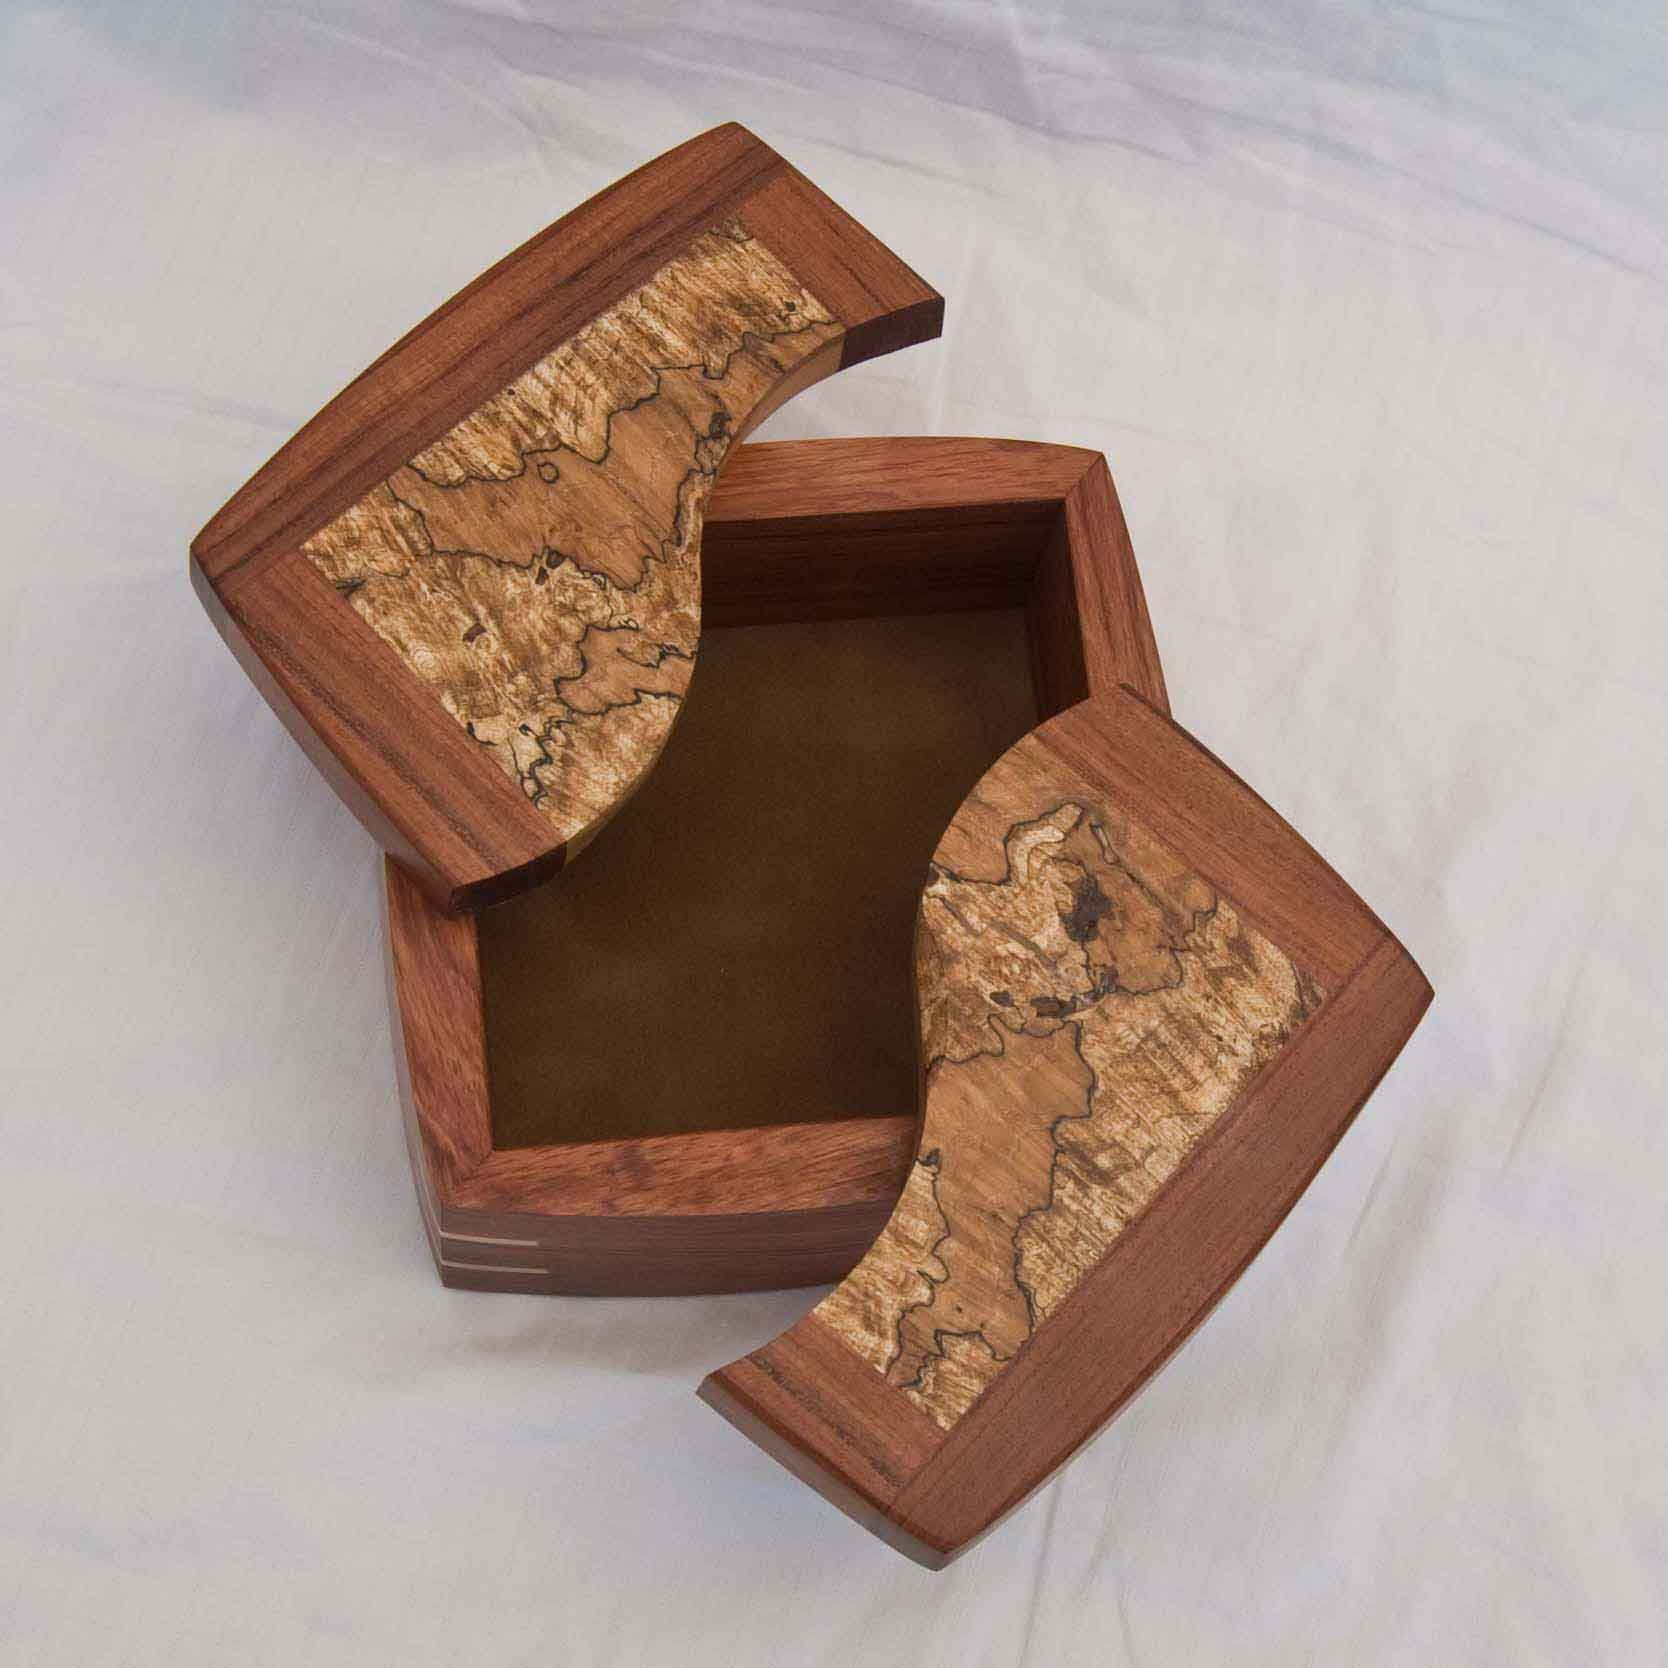 four examples of a handmade decorative keepsake box with the lids open boxes wooden box. Black Bedroom Furniture Sets. Home Design Ideas